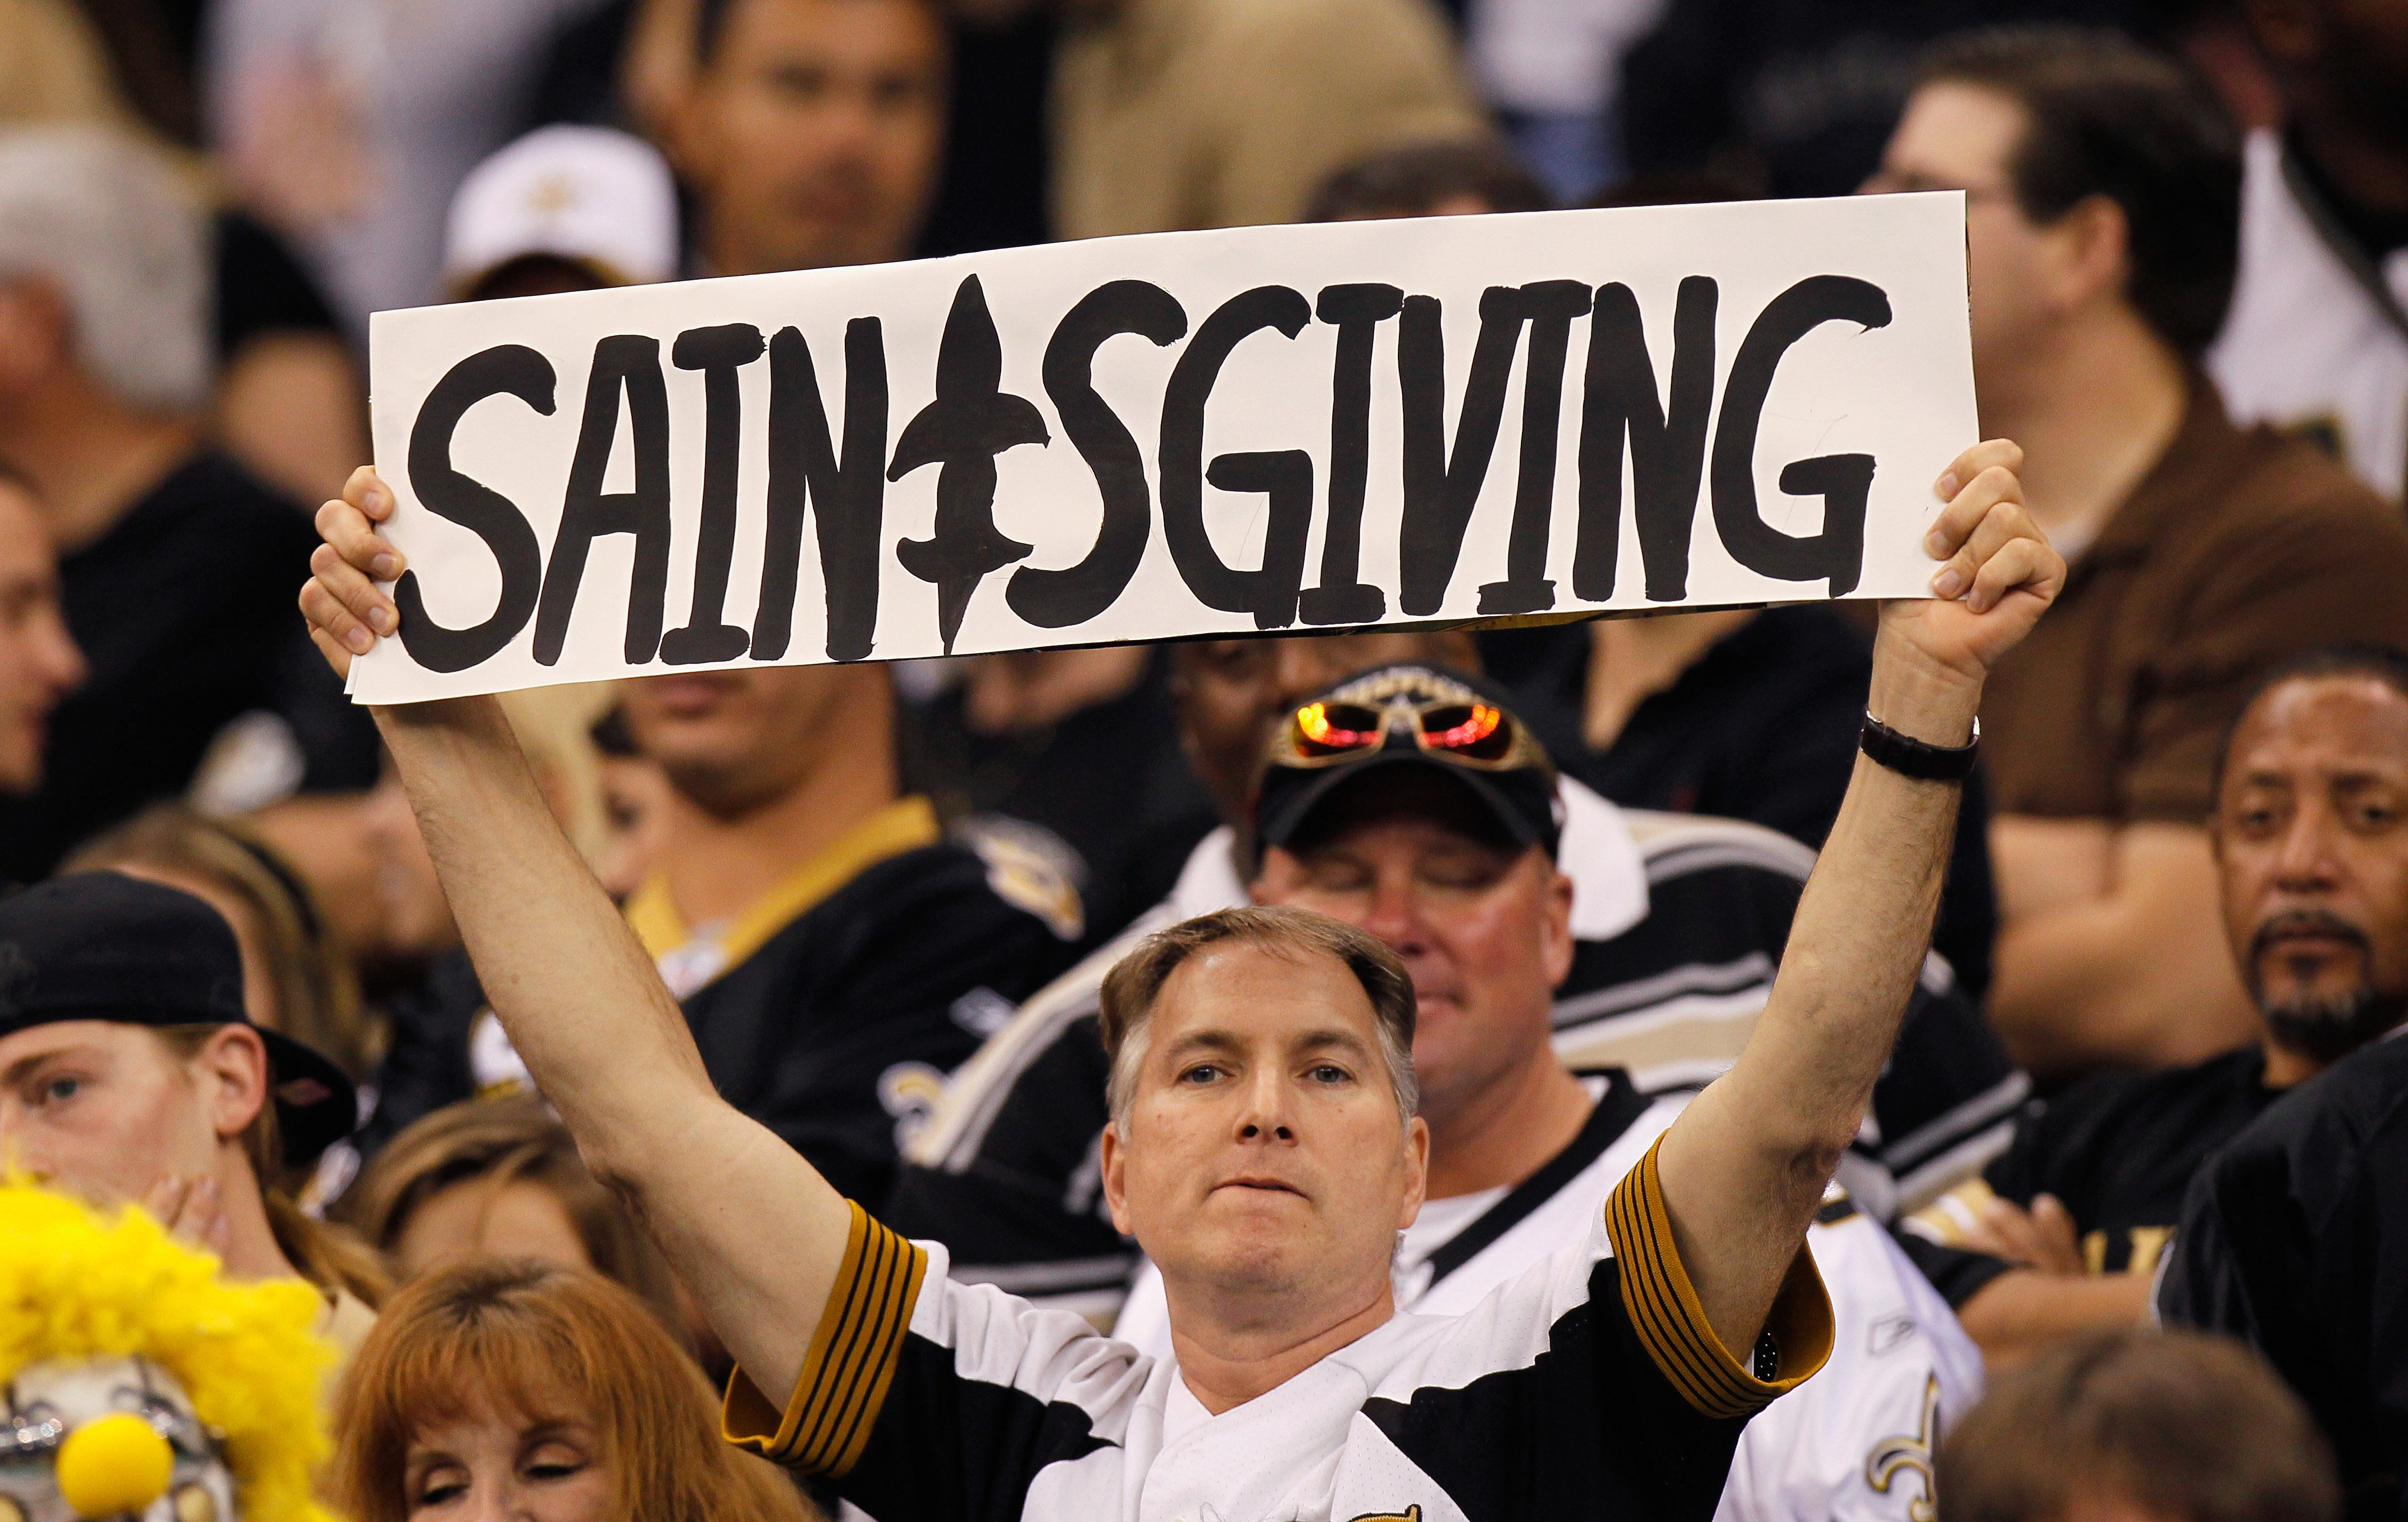 NEW ORLEANS - NOVEMBER 21:  A fan of the New Orleans Saints holds up a sign for 'Saintsgiving' during the sign against the Seattle Seahawks at Louisiana Superdome on November 21, 2010 in New Orleans, Louisiana.  (Photo by Kevin C. Cox/Getty Images)